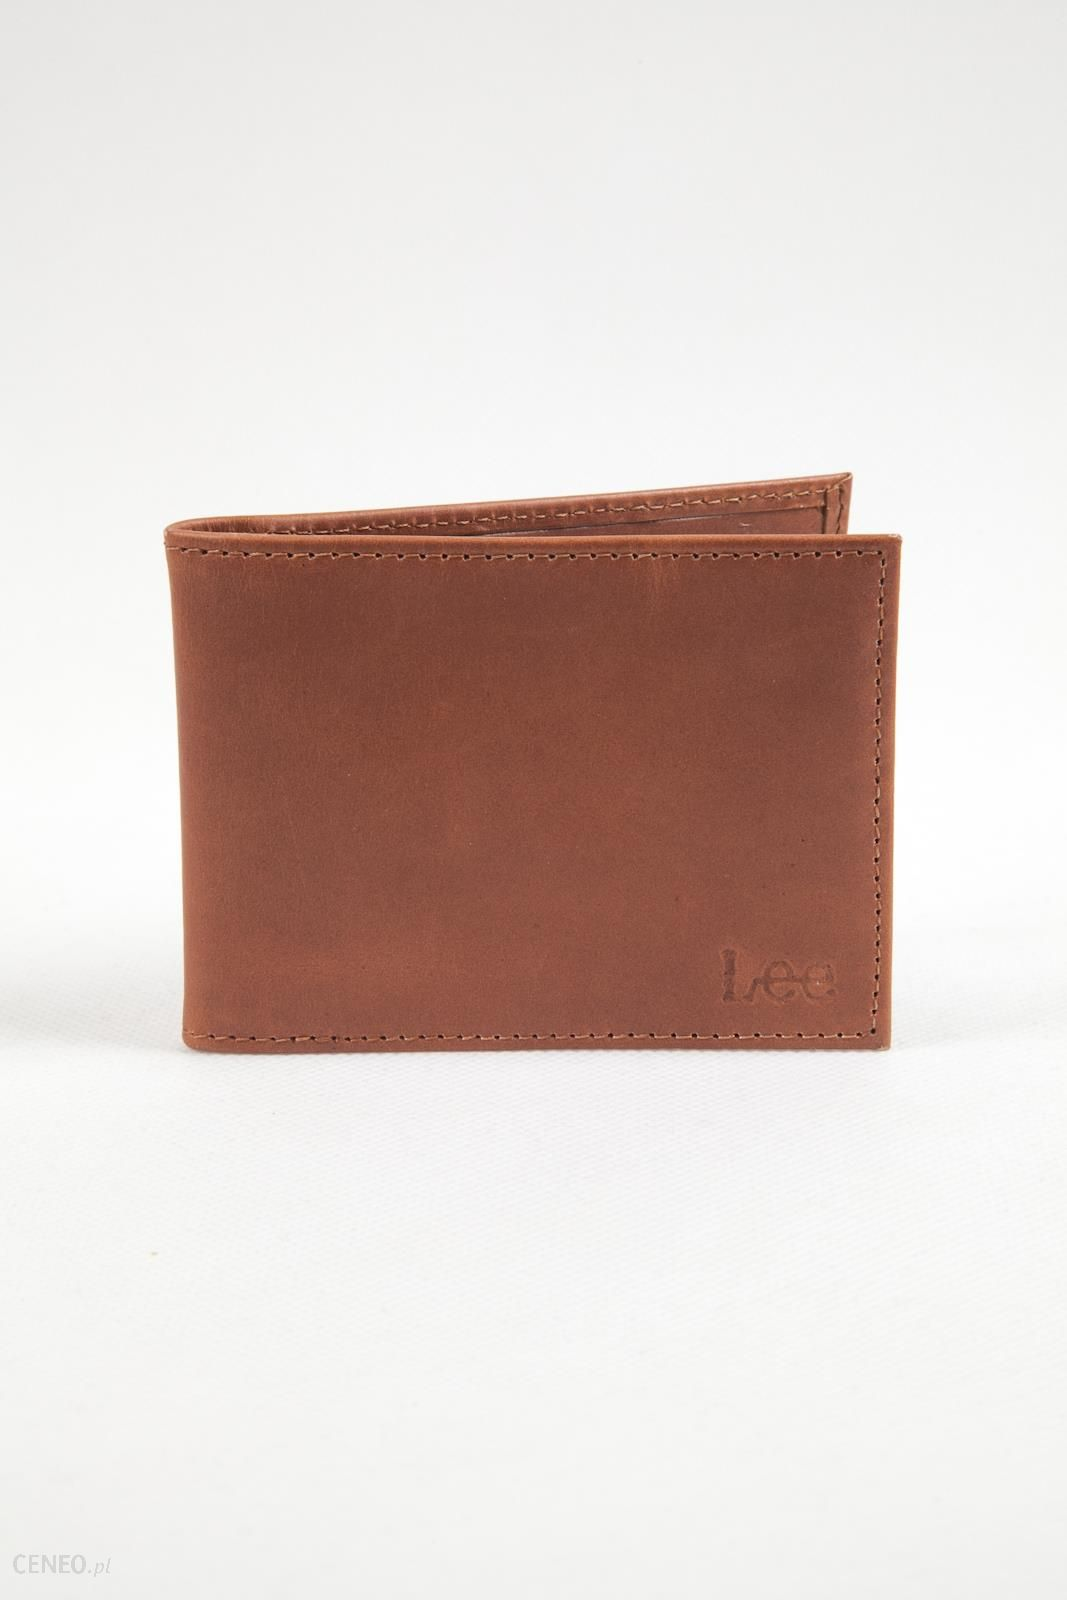 b692be7acdf5a PORTFEL MĘSKI LEE AKCESORIA CREDIT CARD HOLDER DARK BROW   88 88 - zdjęcie 1